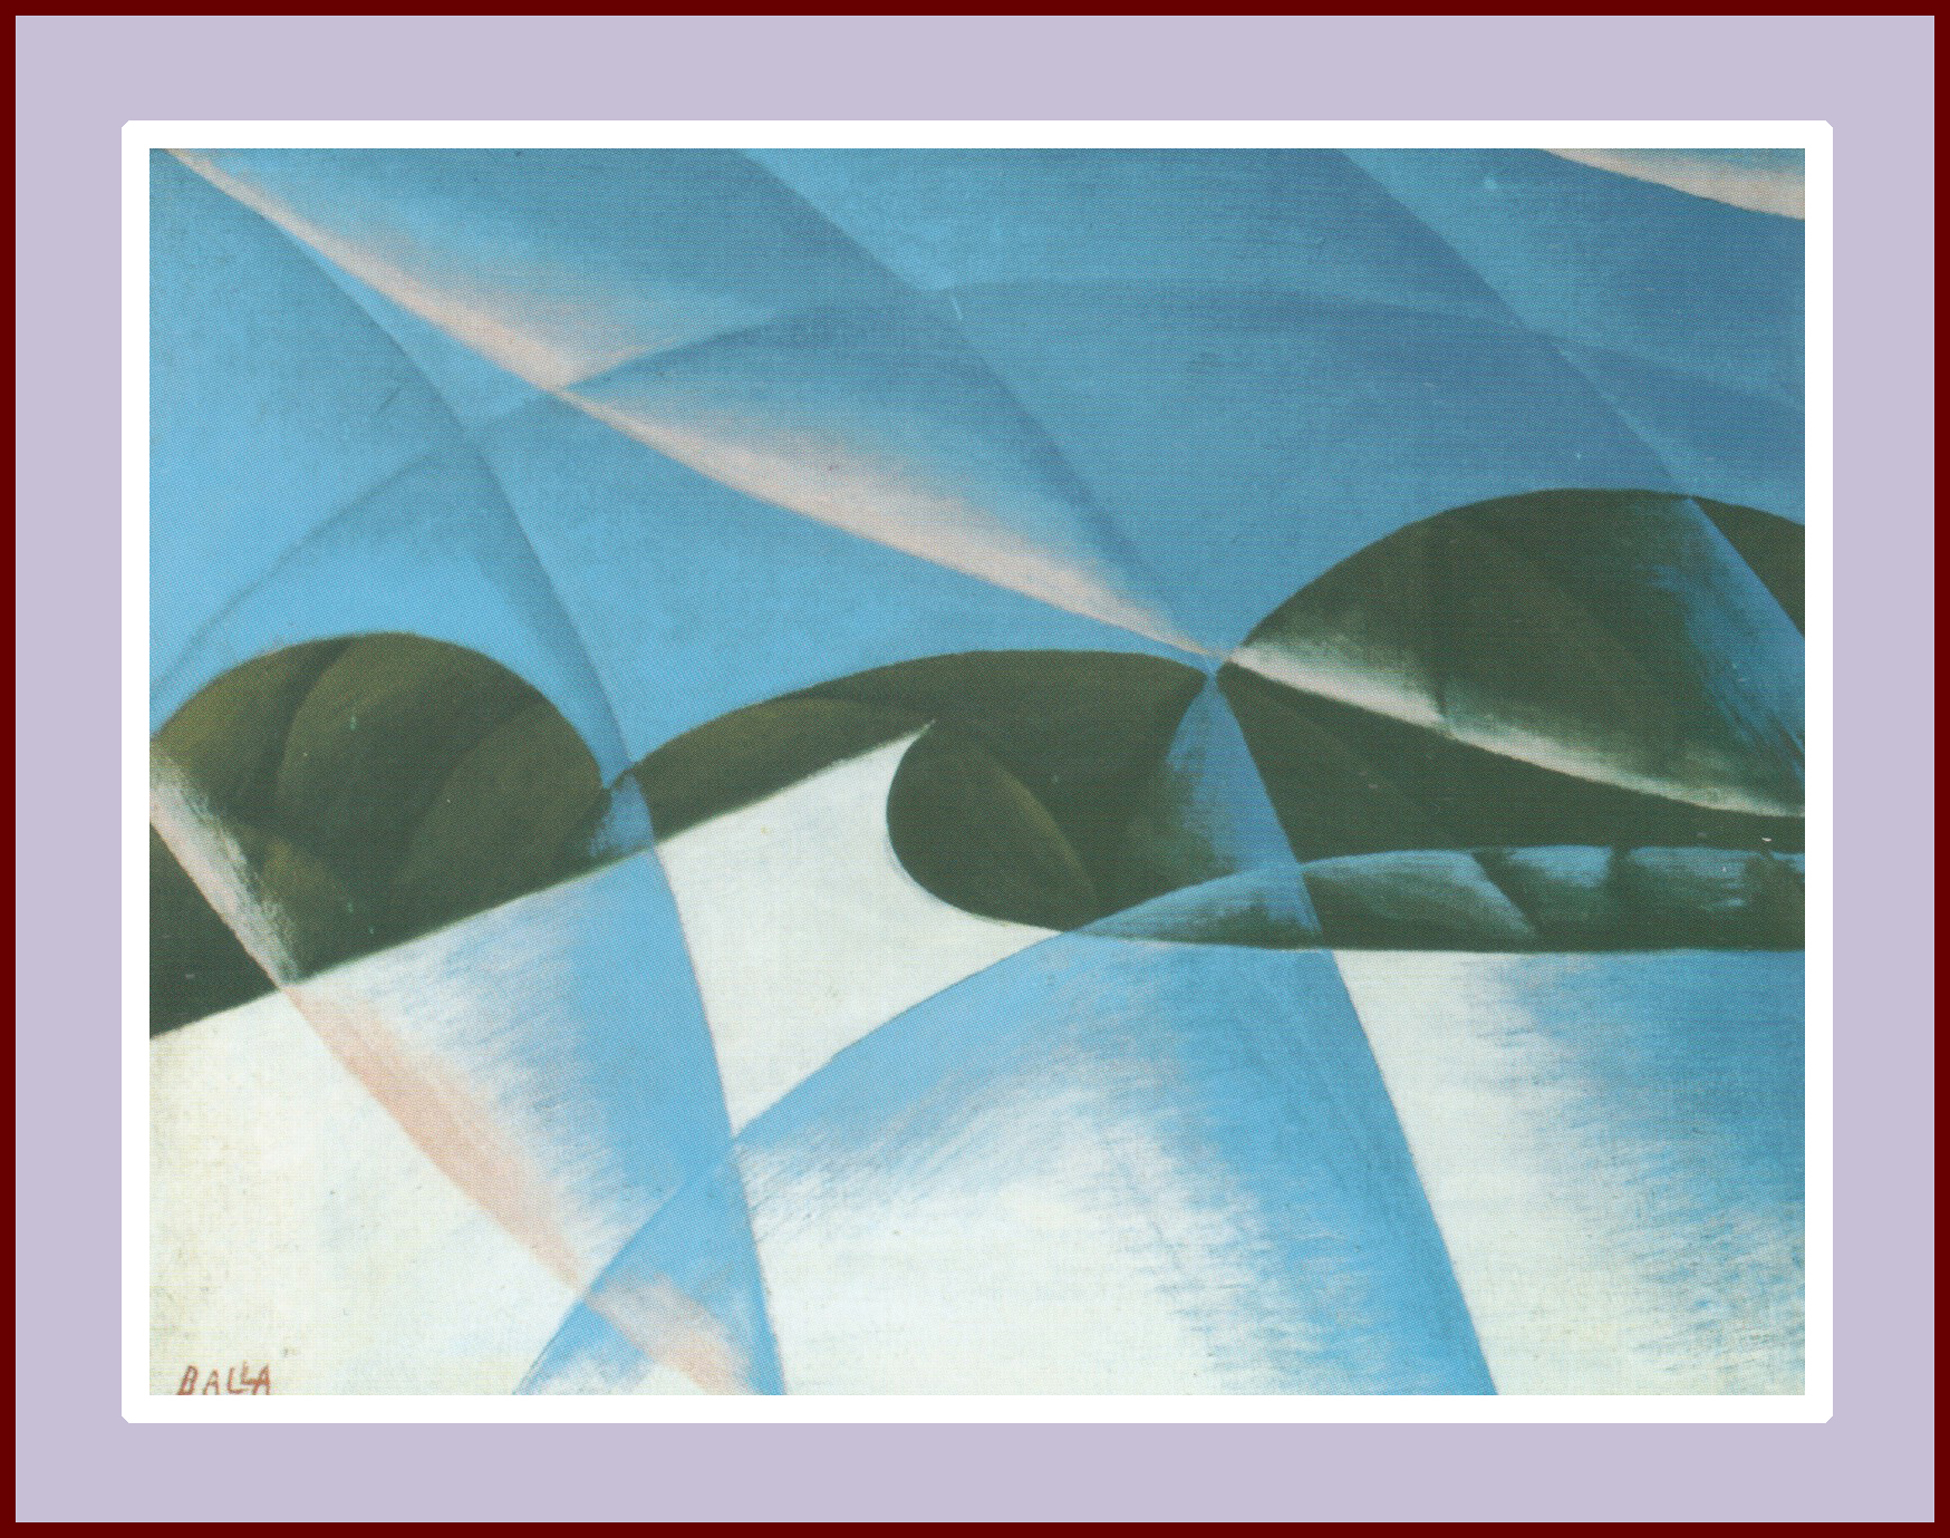 a biography of giacomo balla and an analysis of his painting abstract speed the car has passed Enjoy proficient essay writing and custom writing services provided by professional academic writers  who has both the creativity and understanding of our clients.